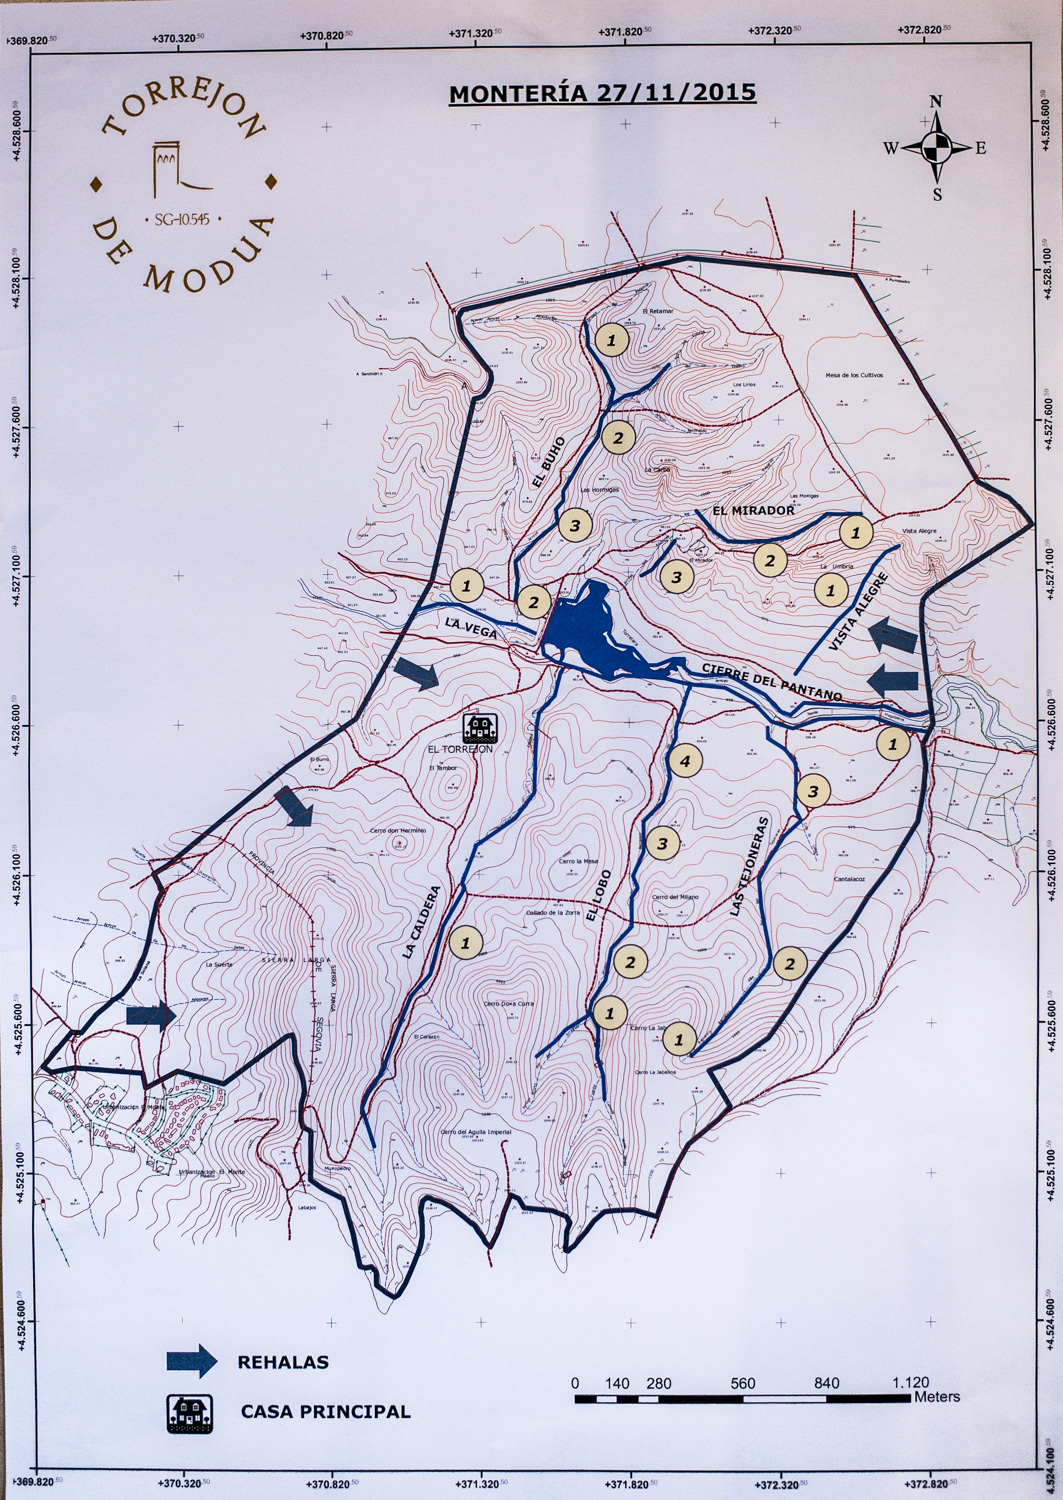 The map of the estate showing the lines of shooting posts.